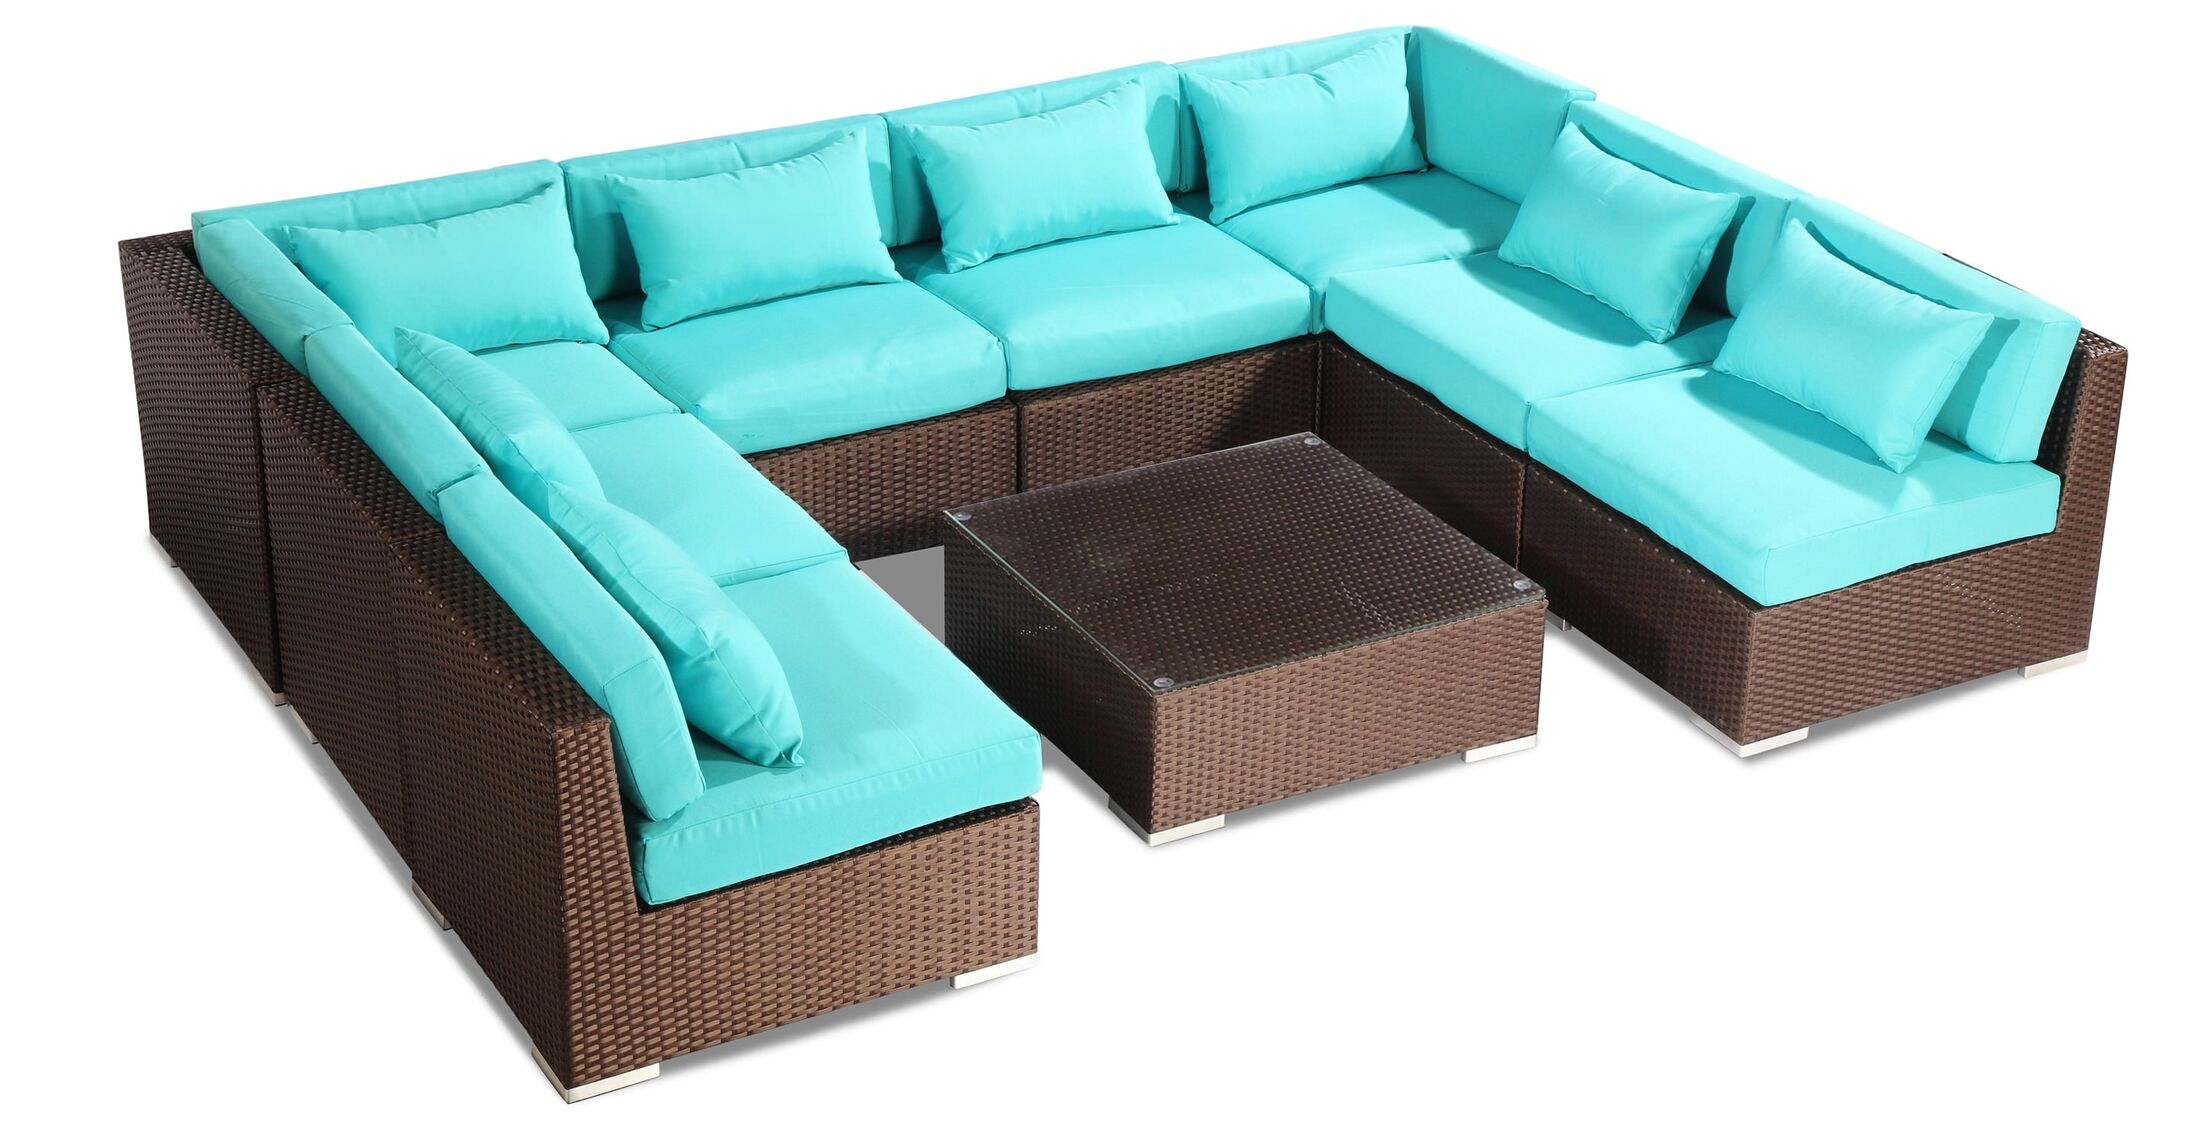 Oahu 9 Piece Sectional Set with Cushions Fabric: Turquoise, Color: Brown